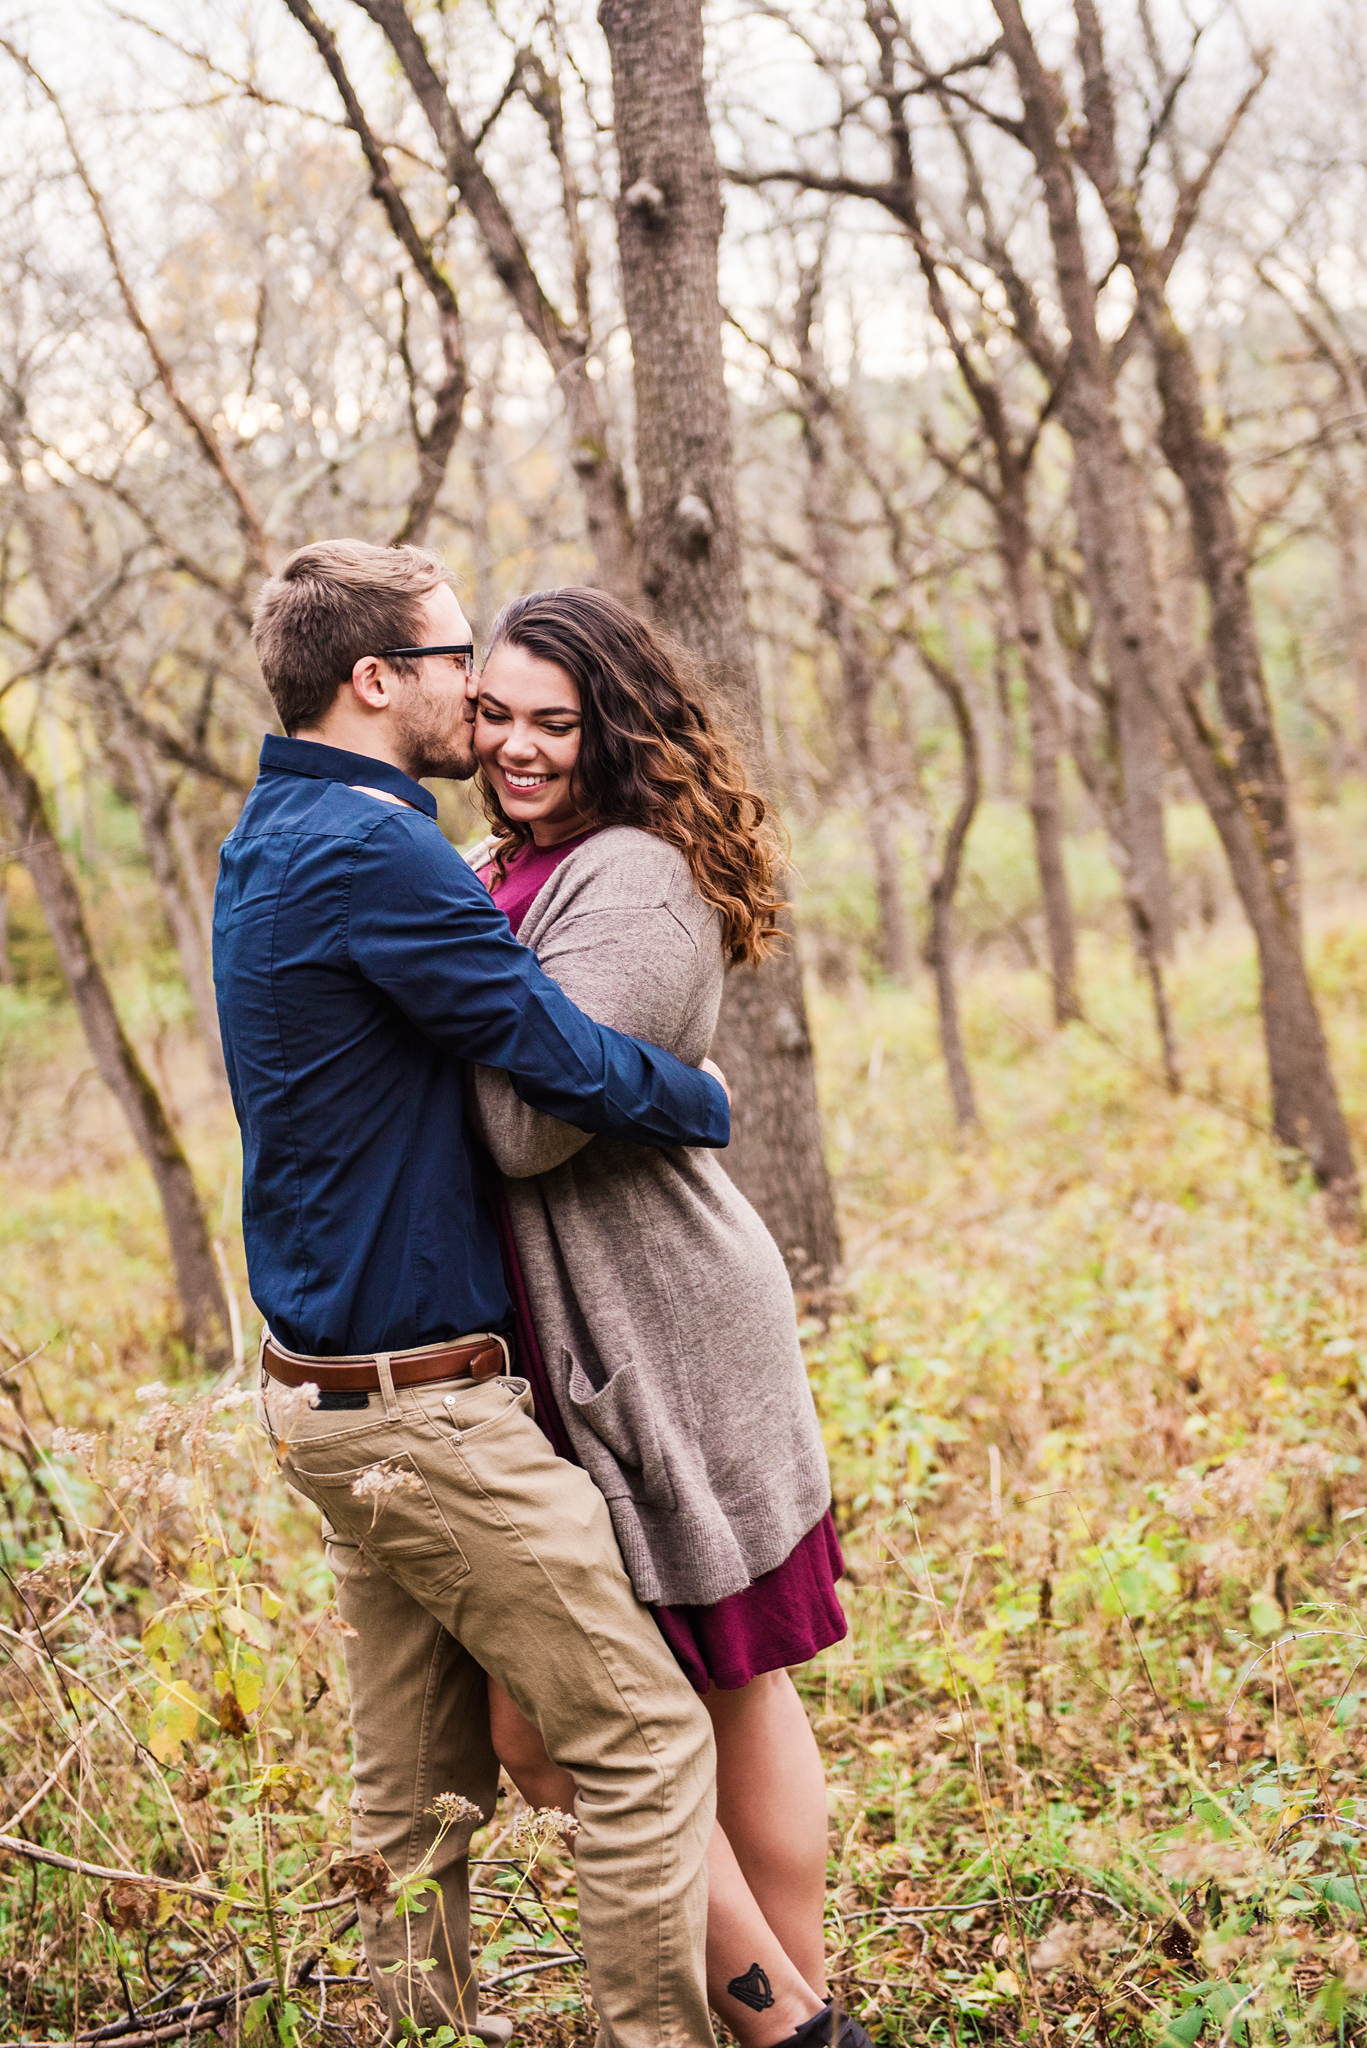 Mendon_Ponds_Park_Rochester_Engagement_Session_JILL_STUDIO_Rochester_NY_Photographer_DSC_5302.jpg